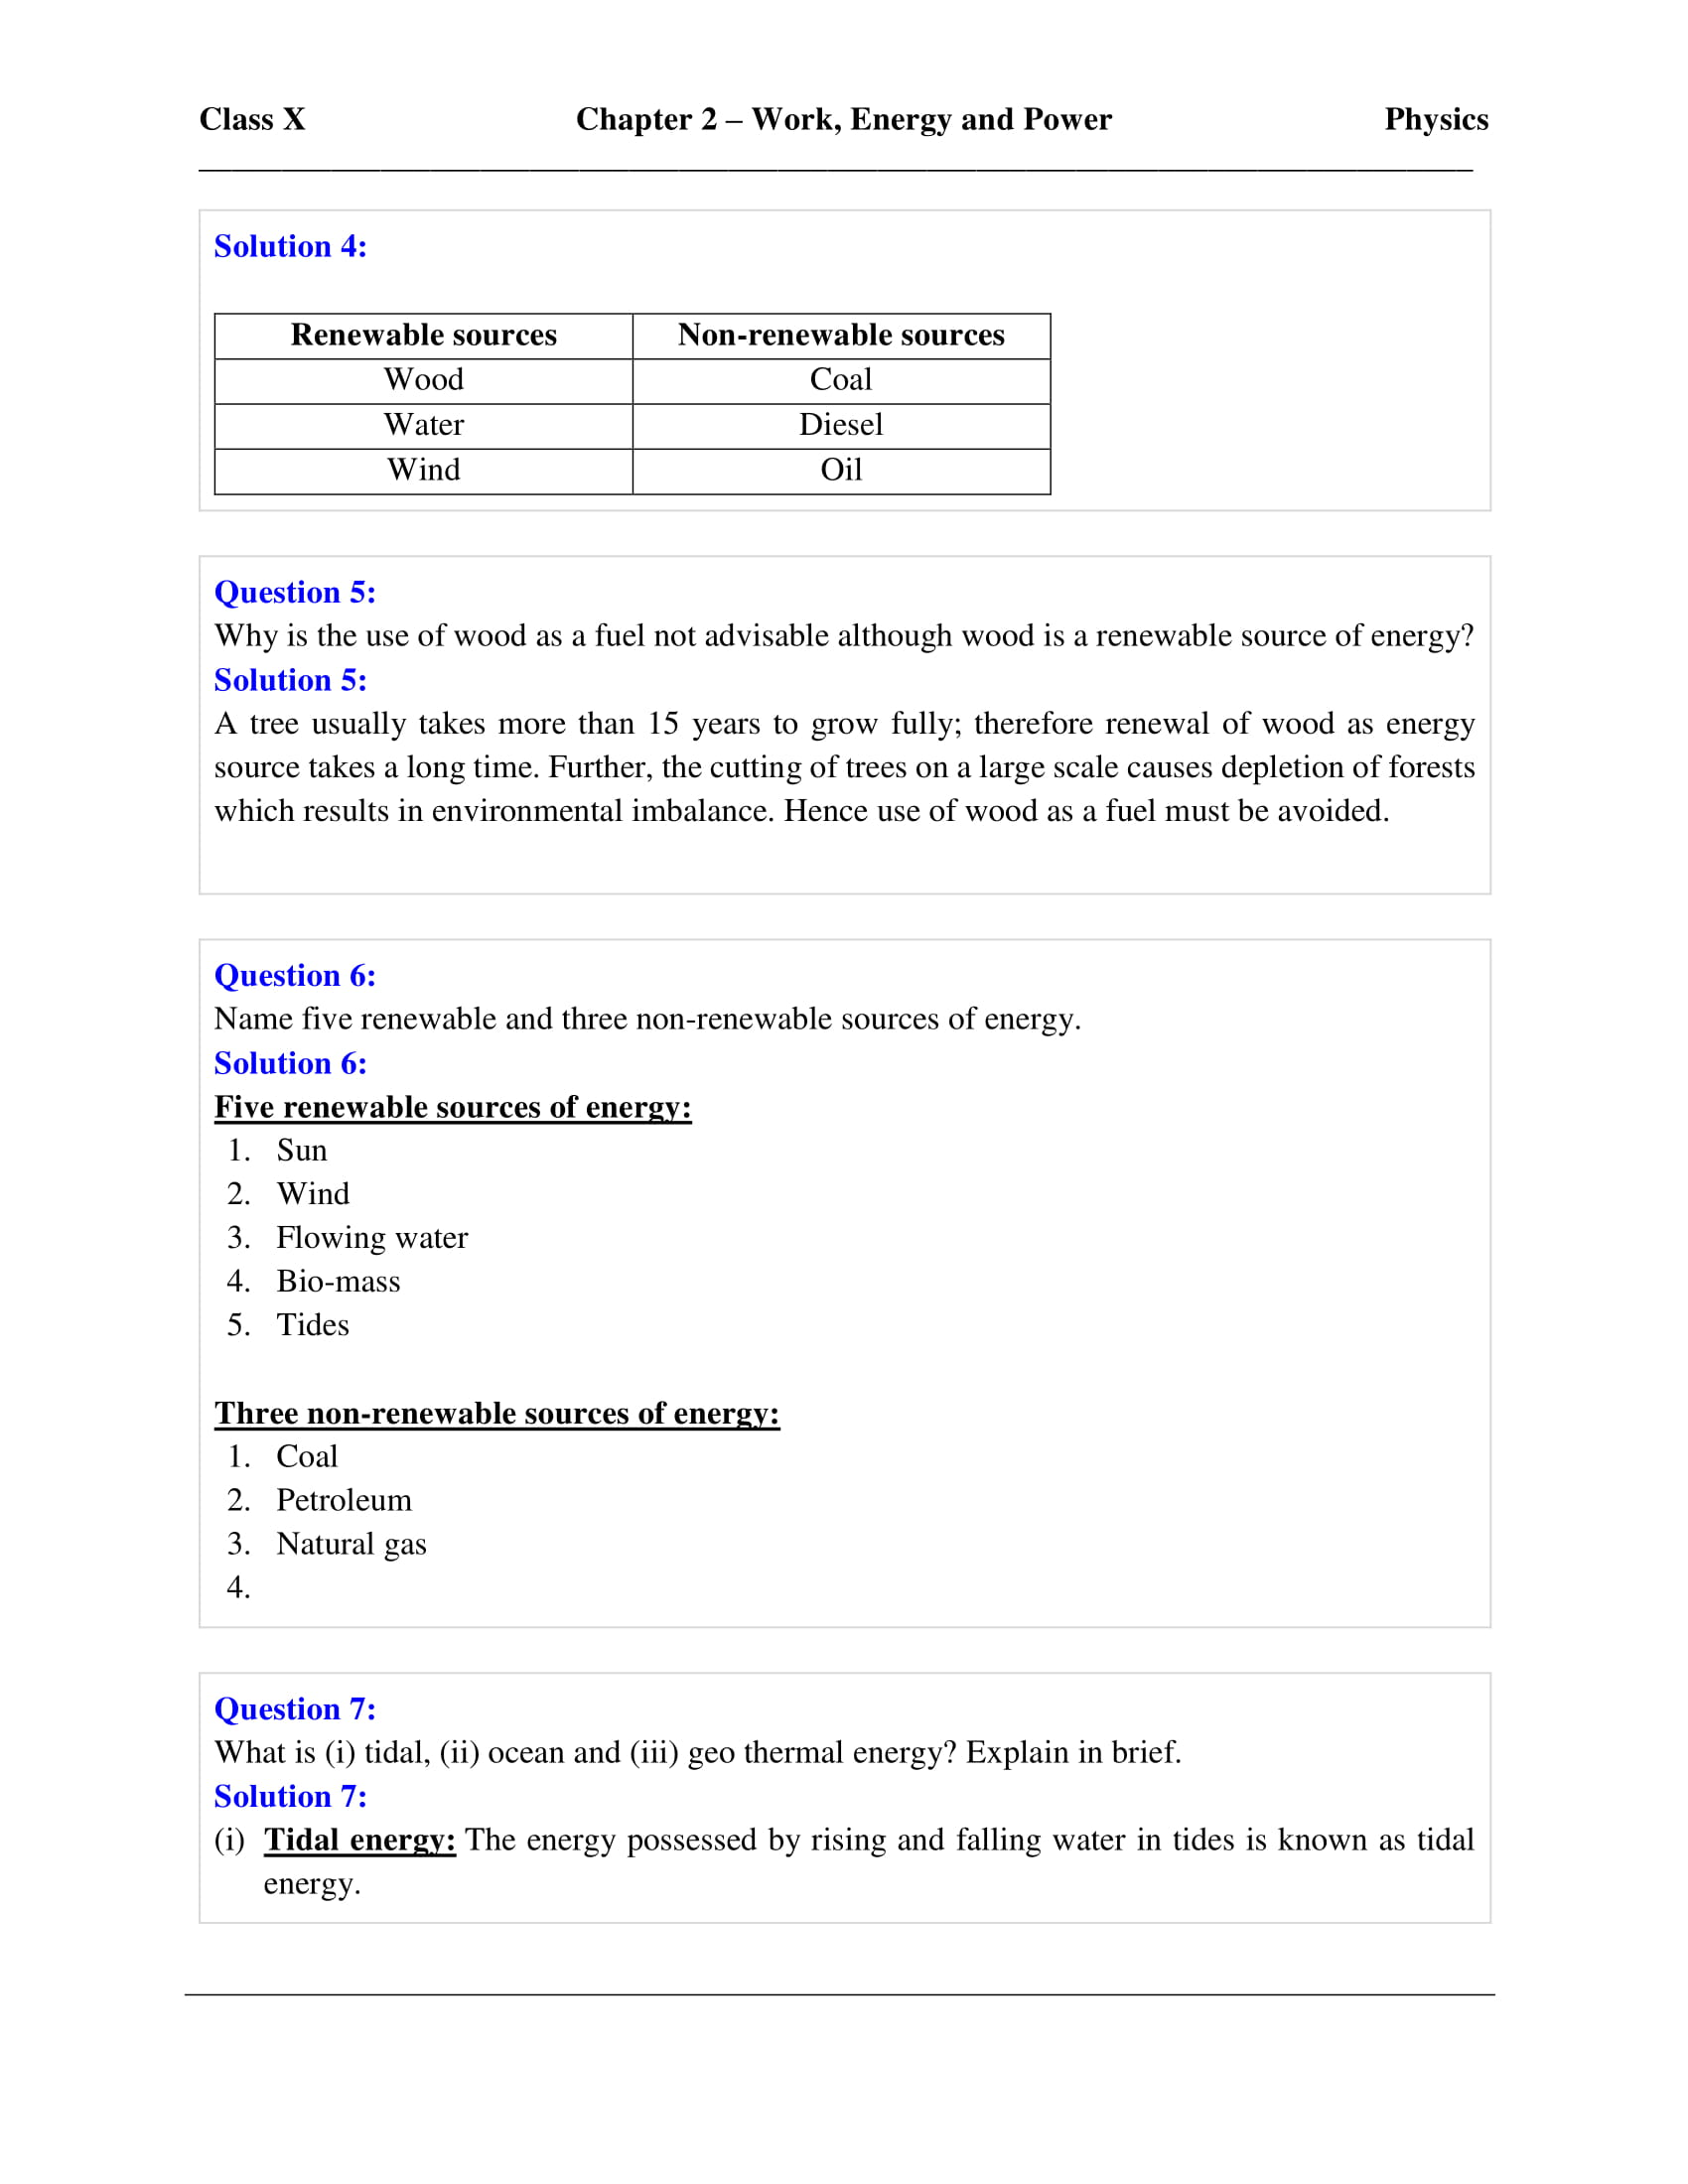 icse-selina-physics-solutions-class-10-chapter-2-work-energy-and-power-34